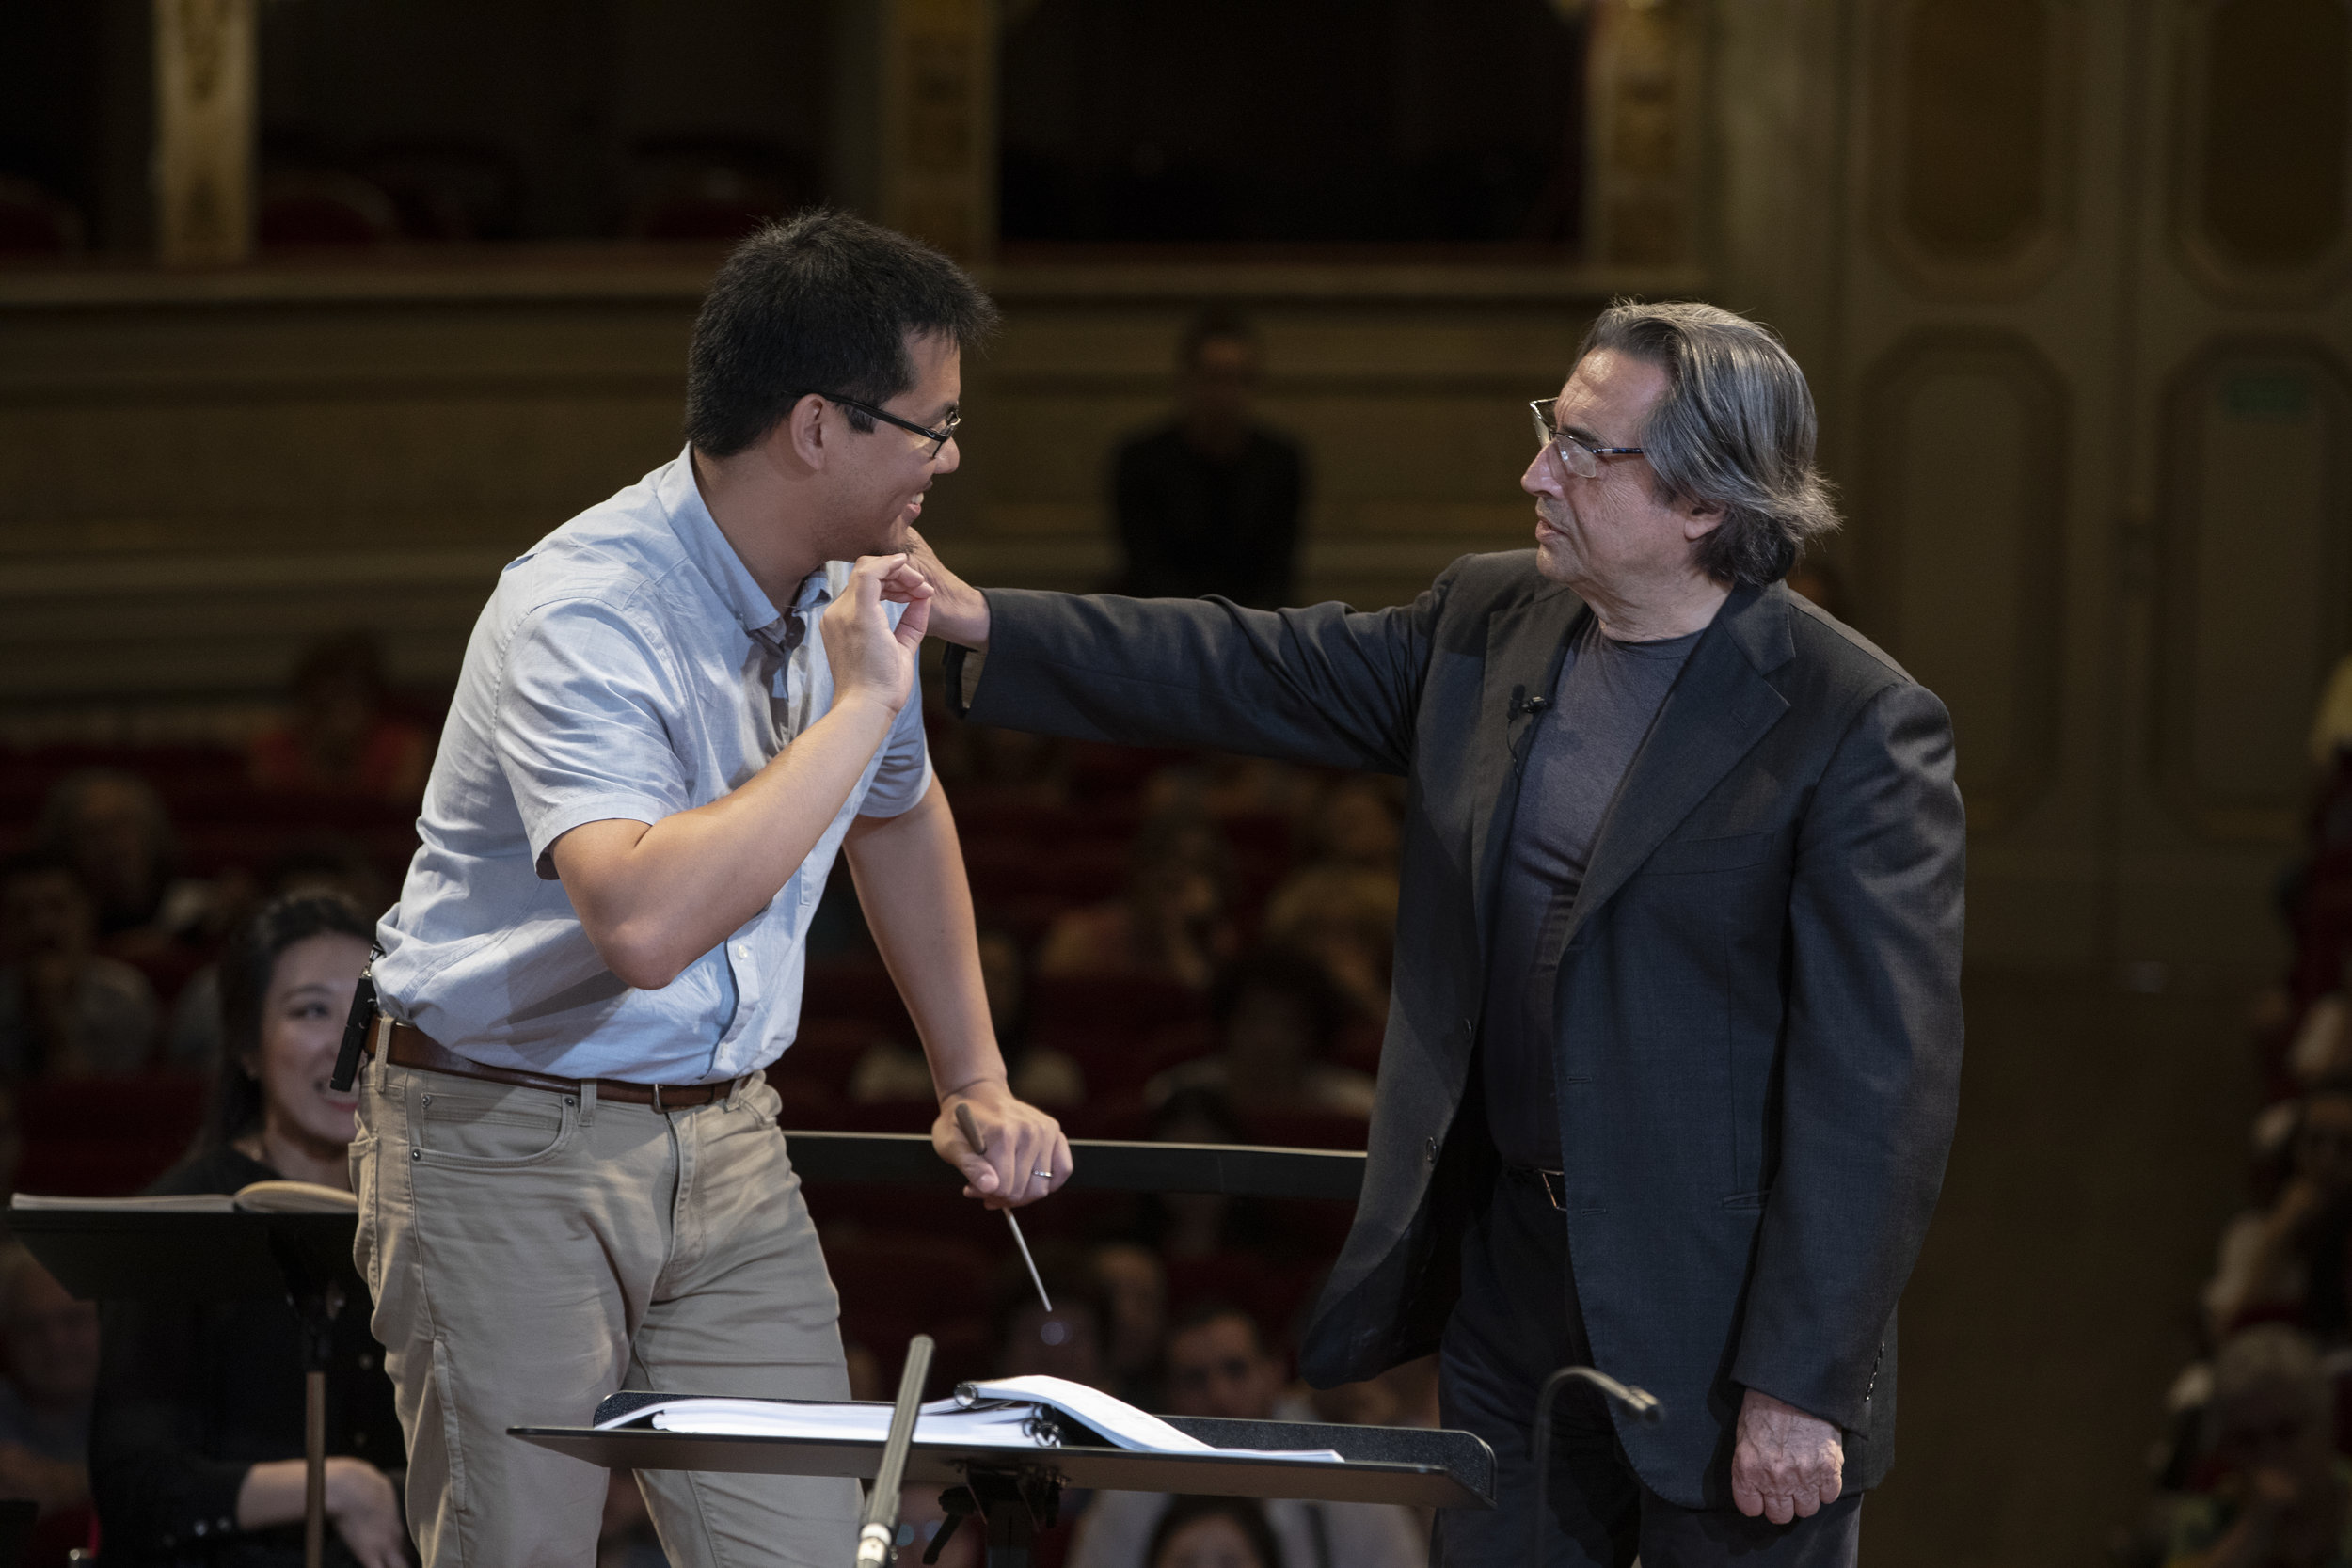 Working with the maestro… - Wilbur Lin studied with Riccardo Muti at the 2019 Italian Opera Academy in Ravenna, Italy.Photo © Silvia Lelli